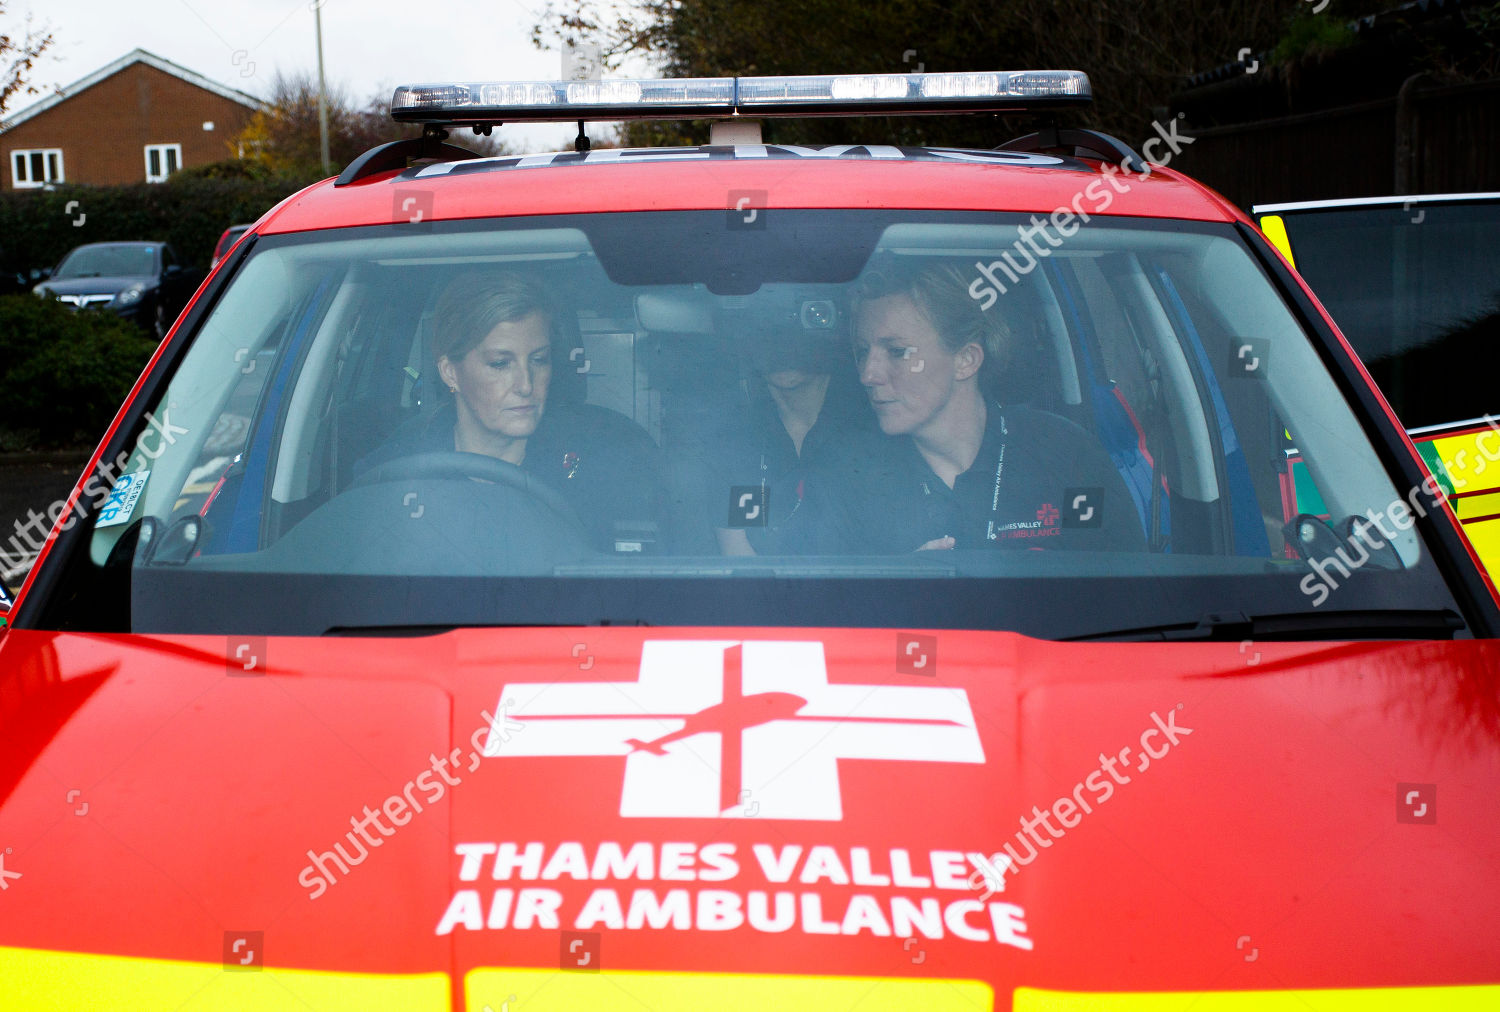 sophie-countess-of-wessex-opens-the-thames-valley-air-ambulance-headquarters-stokenchurch-buckinghamshire-uk-shutterstock-editorial-9968468l.jpg